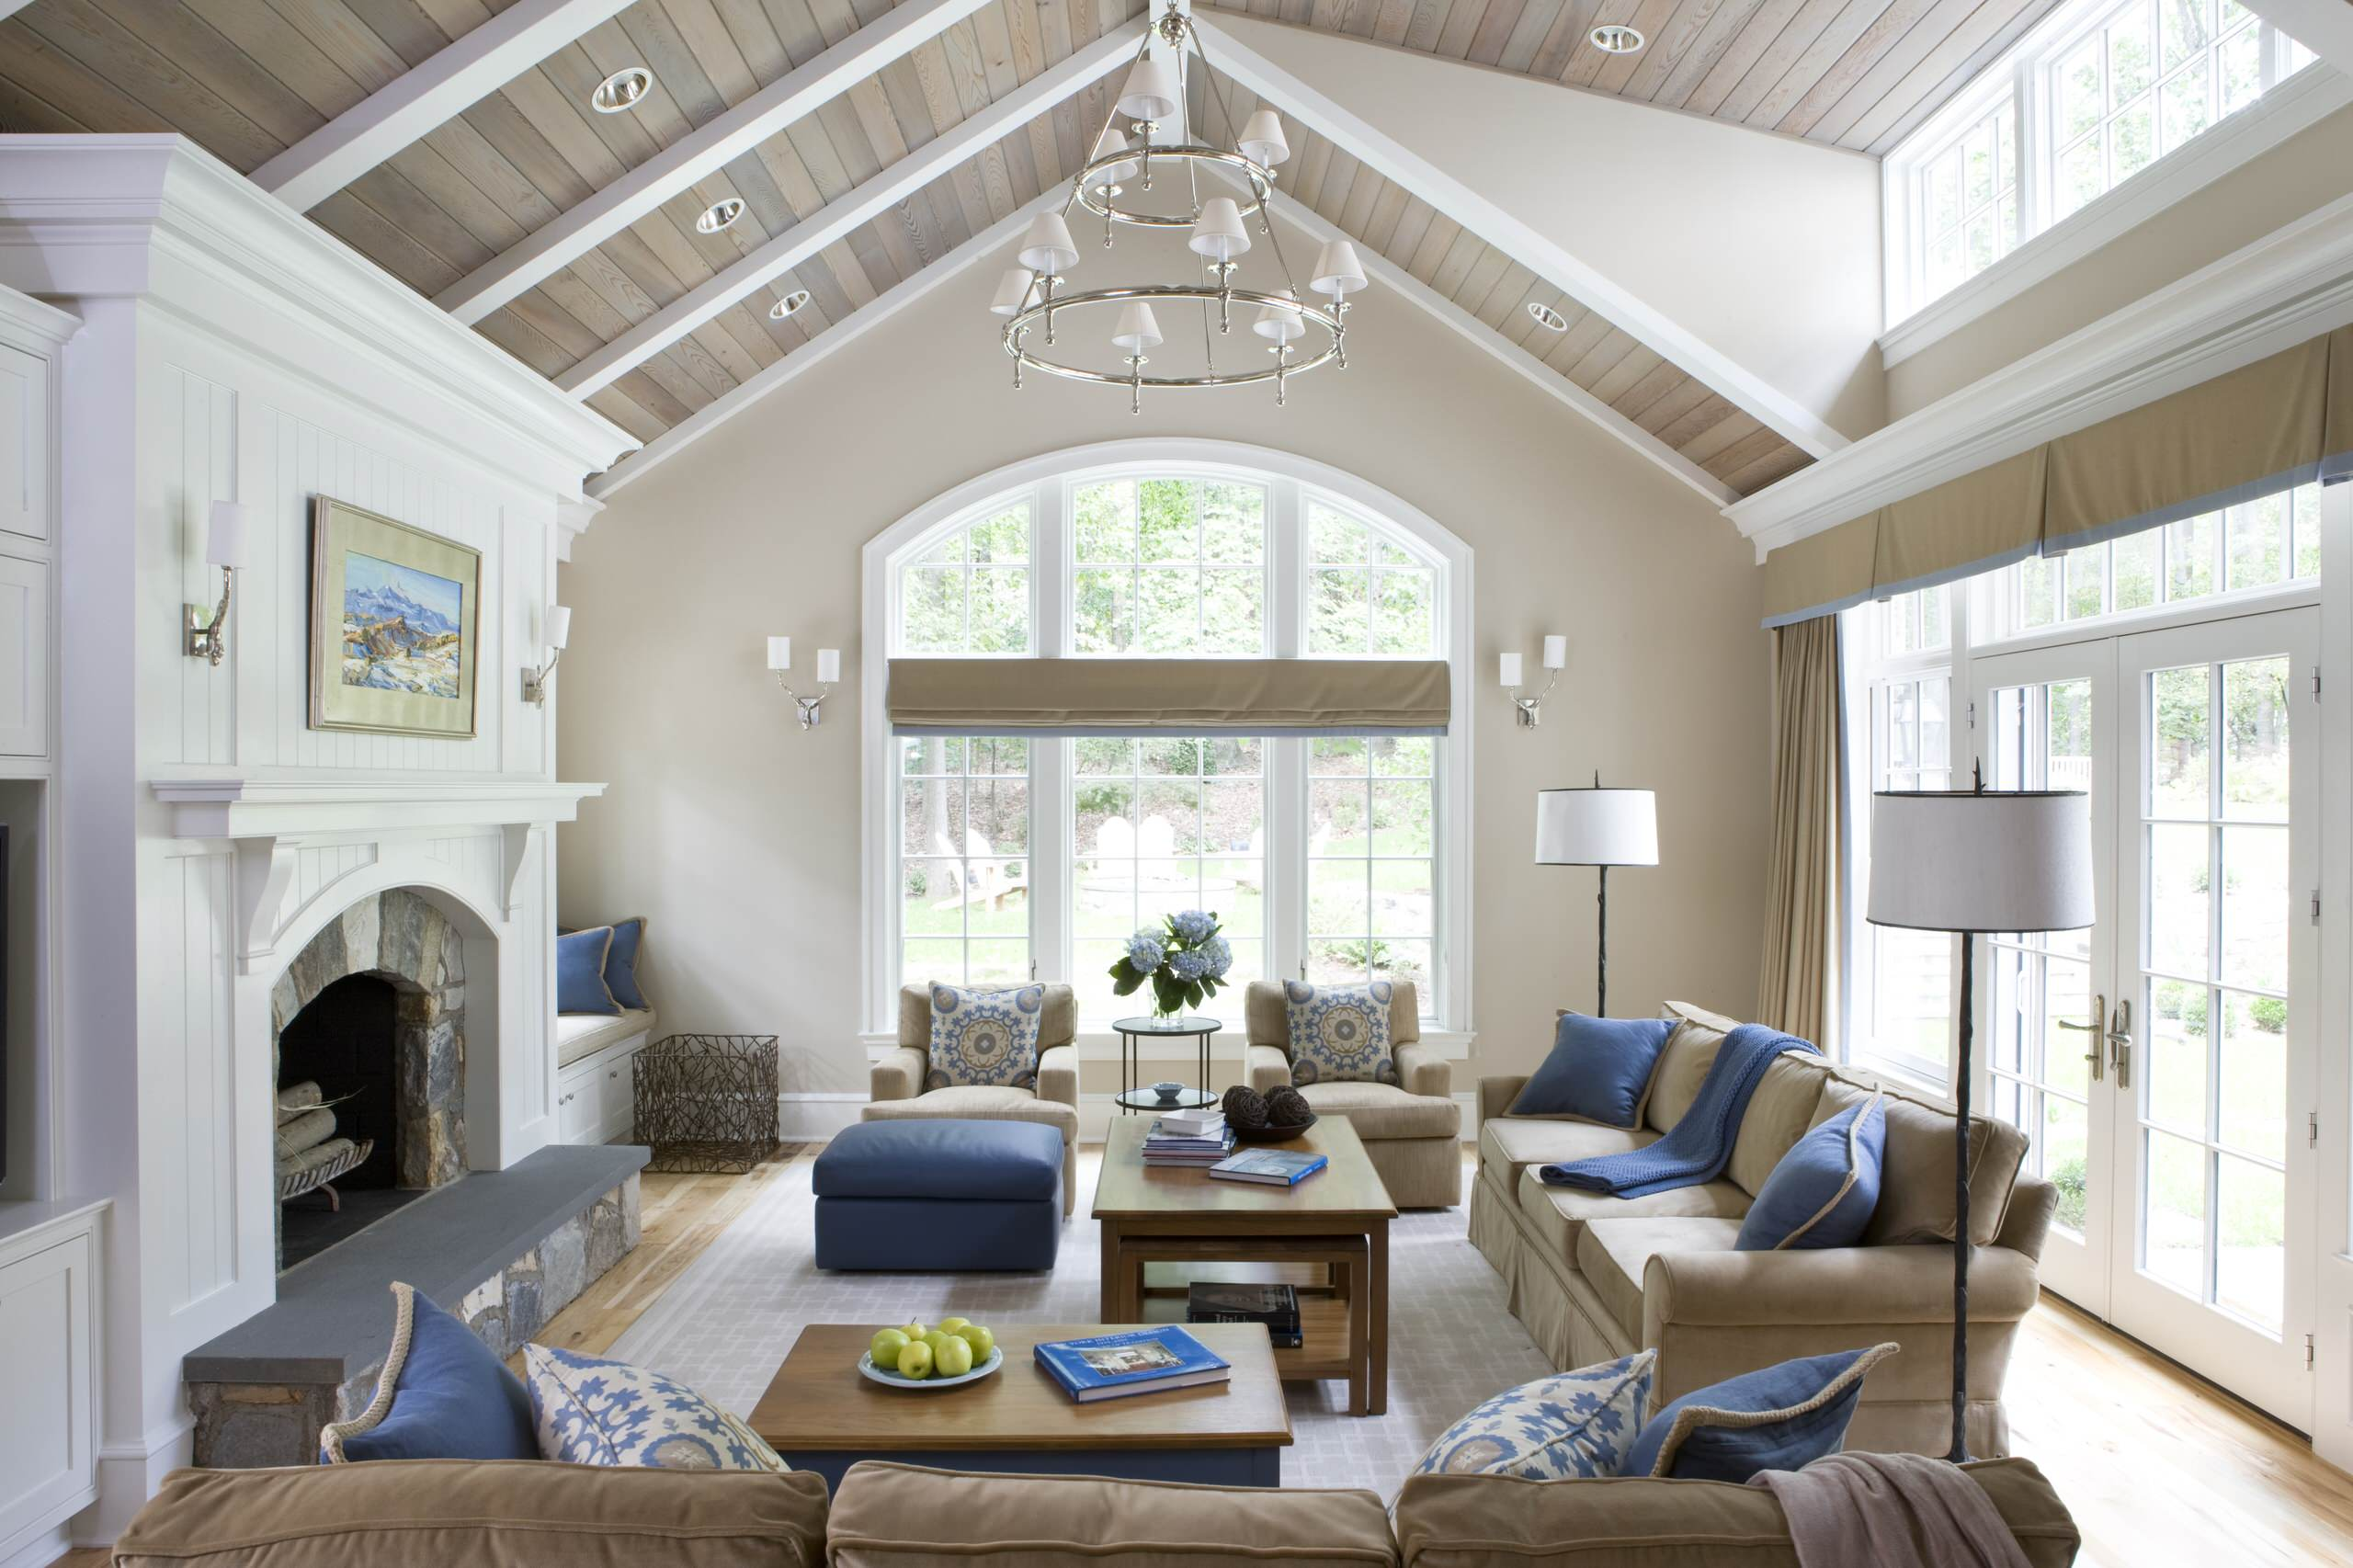 75 Beautiful Vaulted Ceiling Living Room Pictures Ideas July 2021 Houzz